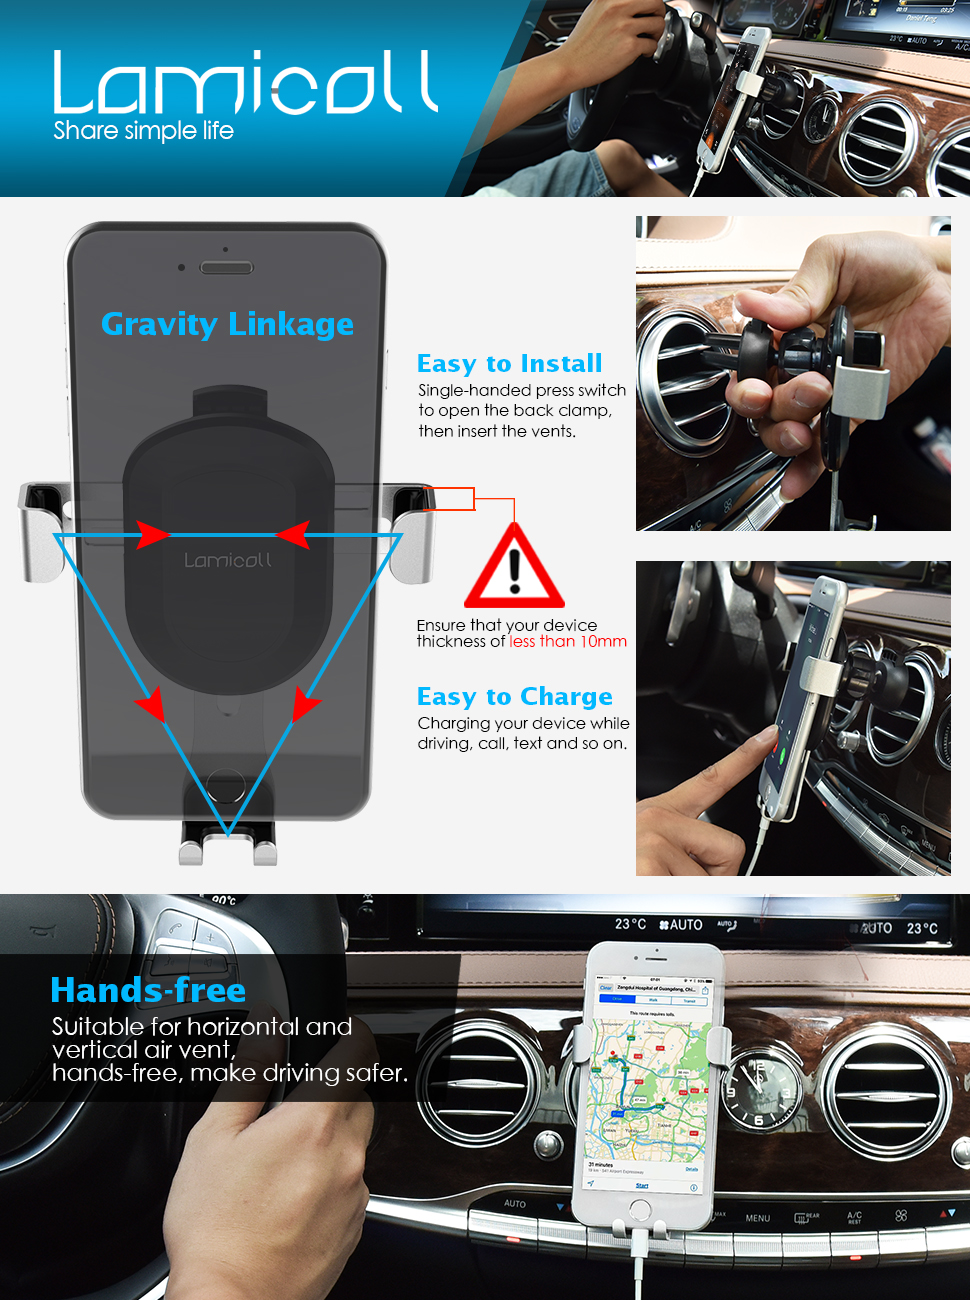 Lamicall Gravity Phone Mount : Universal Cradle Stand Holder Compatible with iPhone Xs XR X 8 7 6 6s Plus 5 5S 5C SE, Galaxy S5 S6 S7 S8, Google, LG, Huawei, Other Smartphone